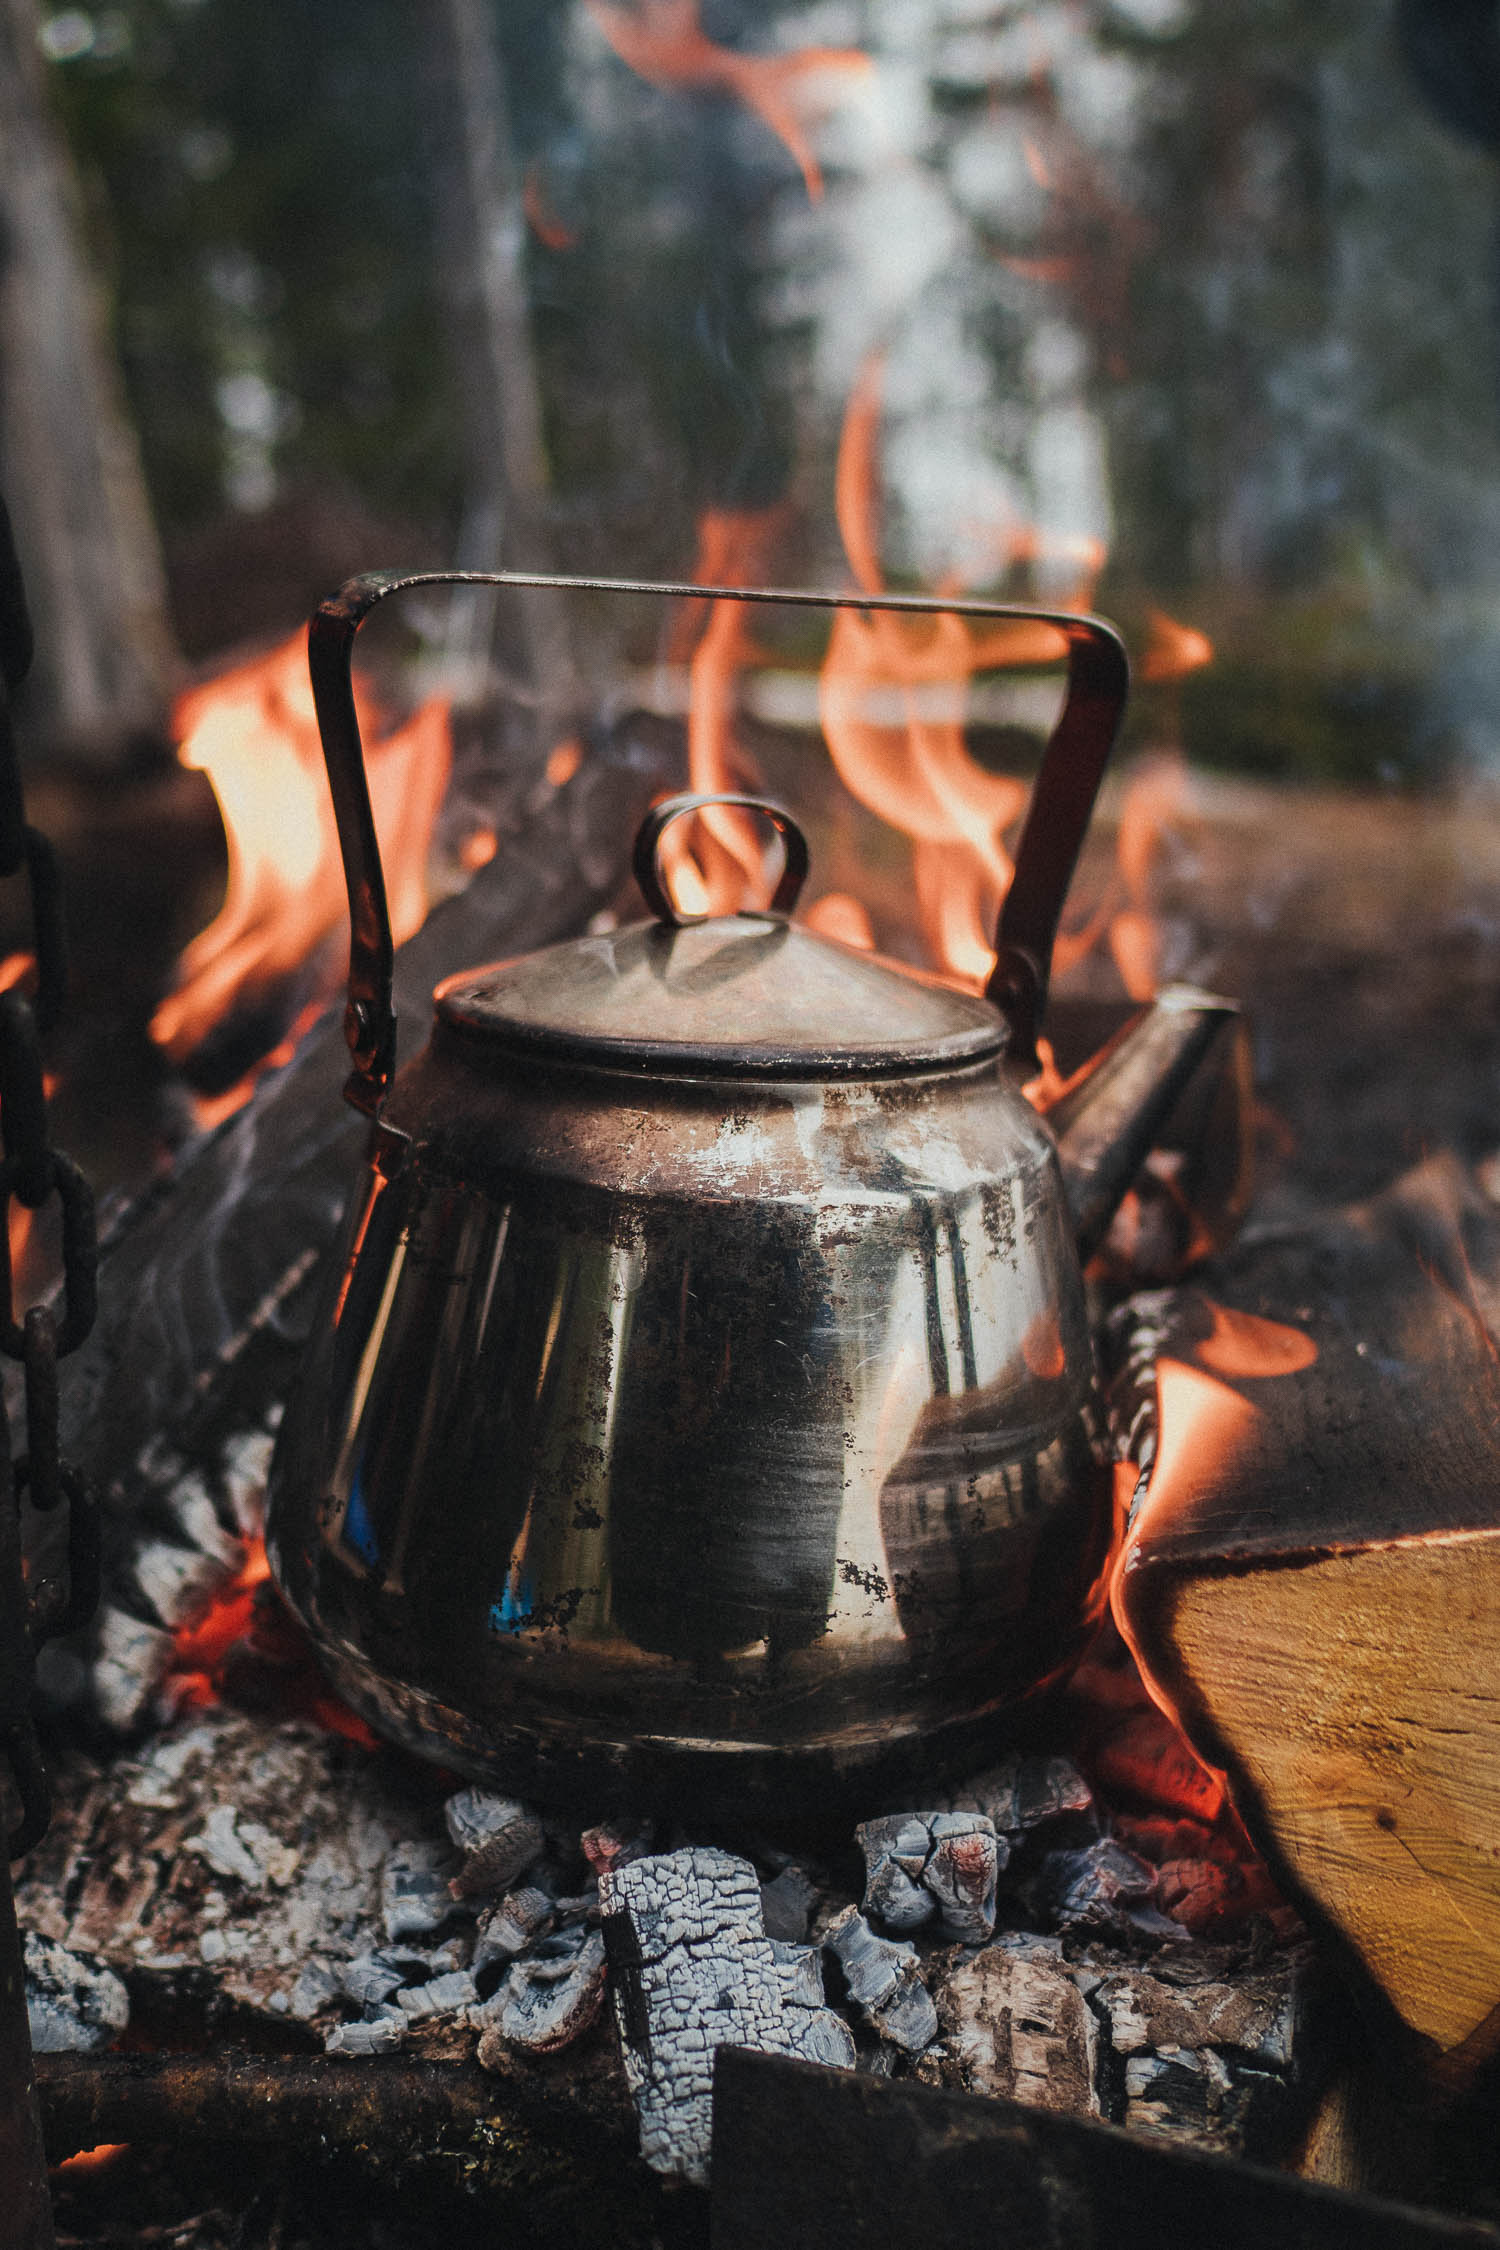 coffee over open fire